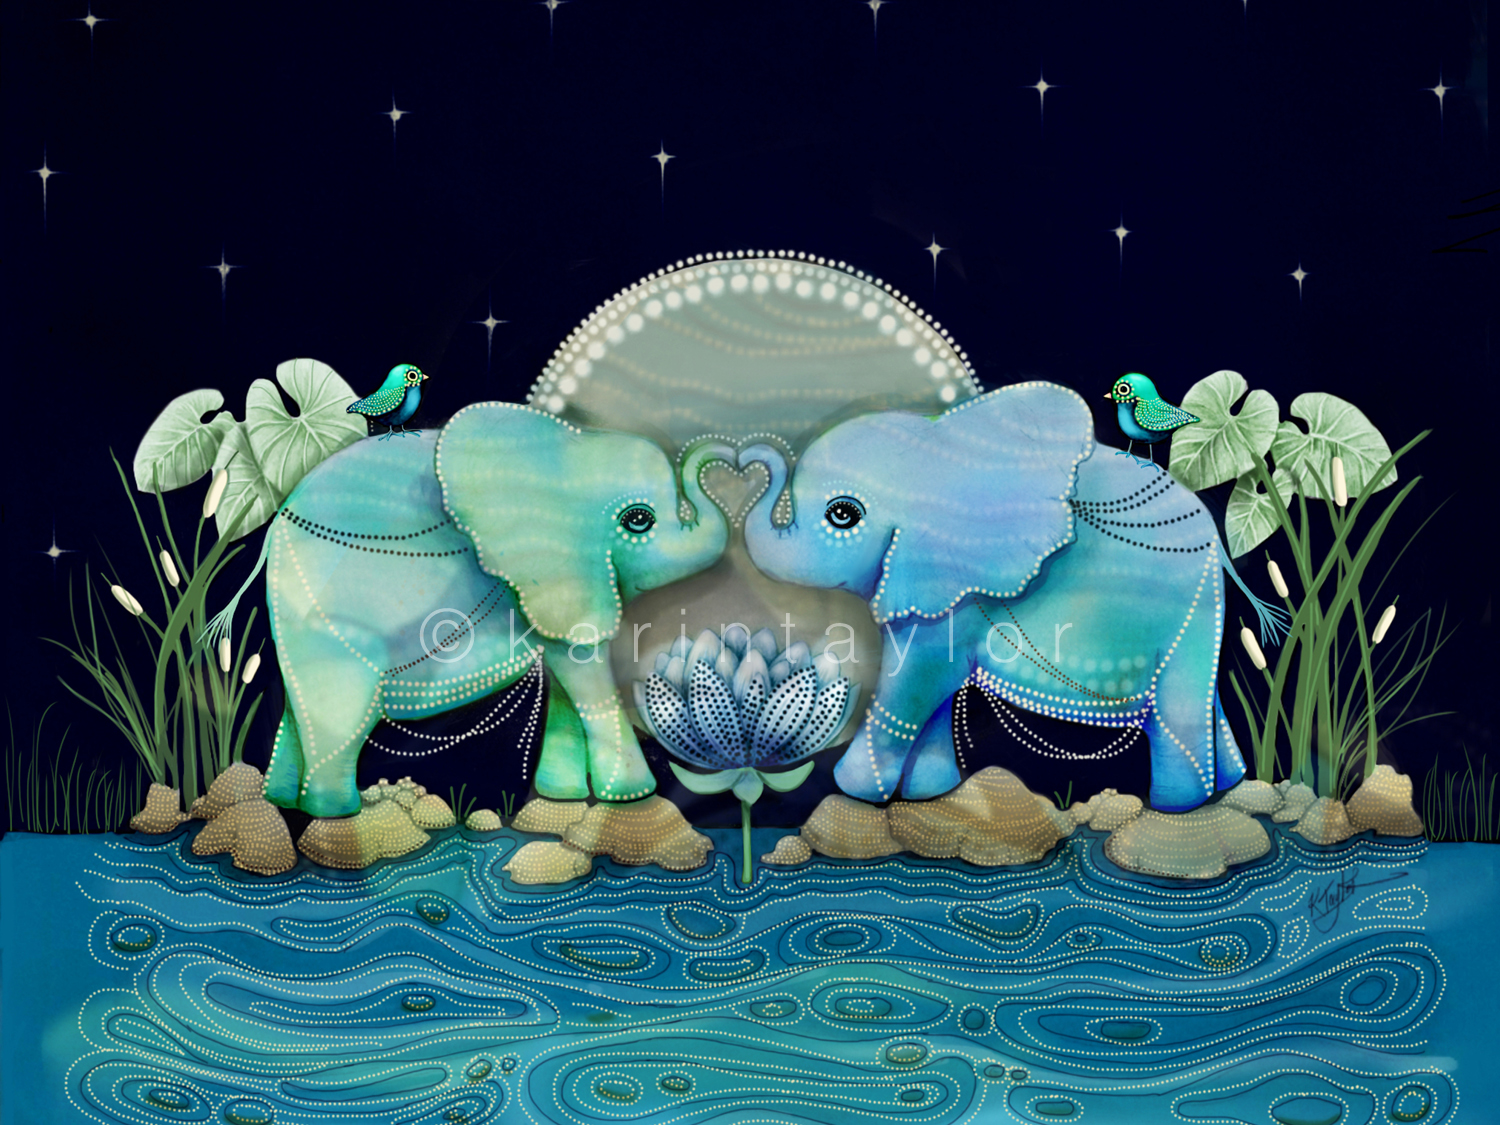 Lotus Flower Elephants Ocean Blue and Sea Green